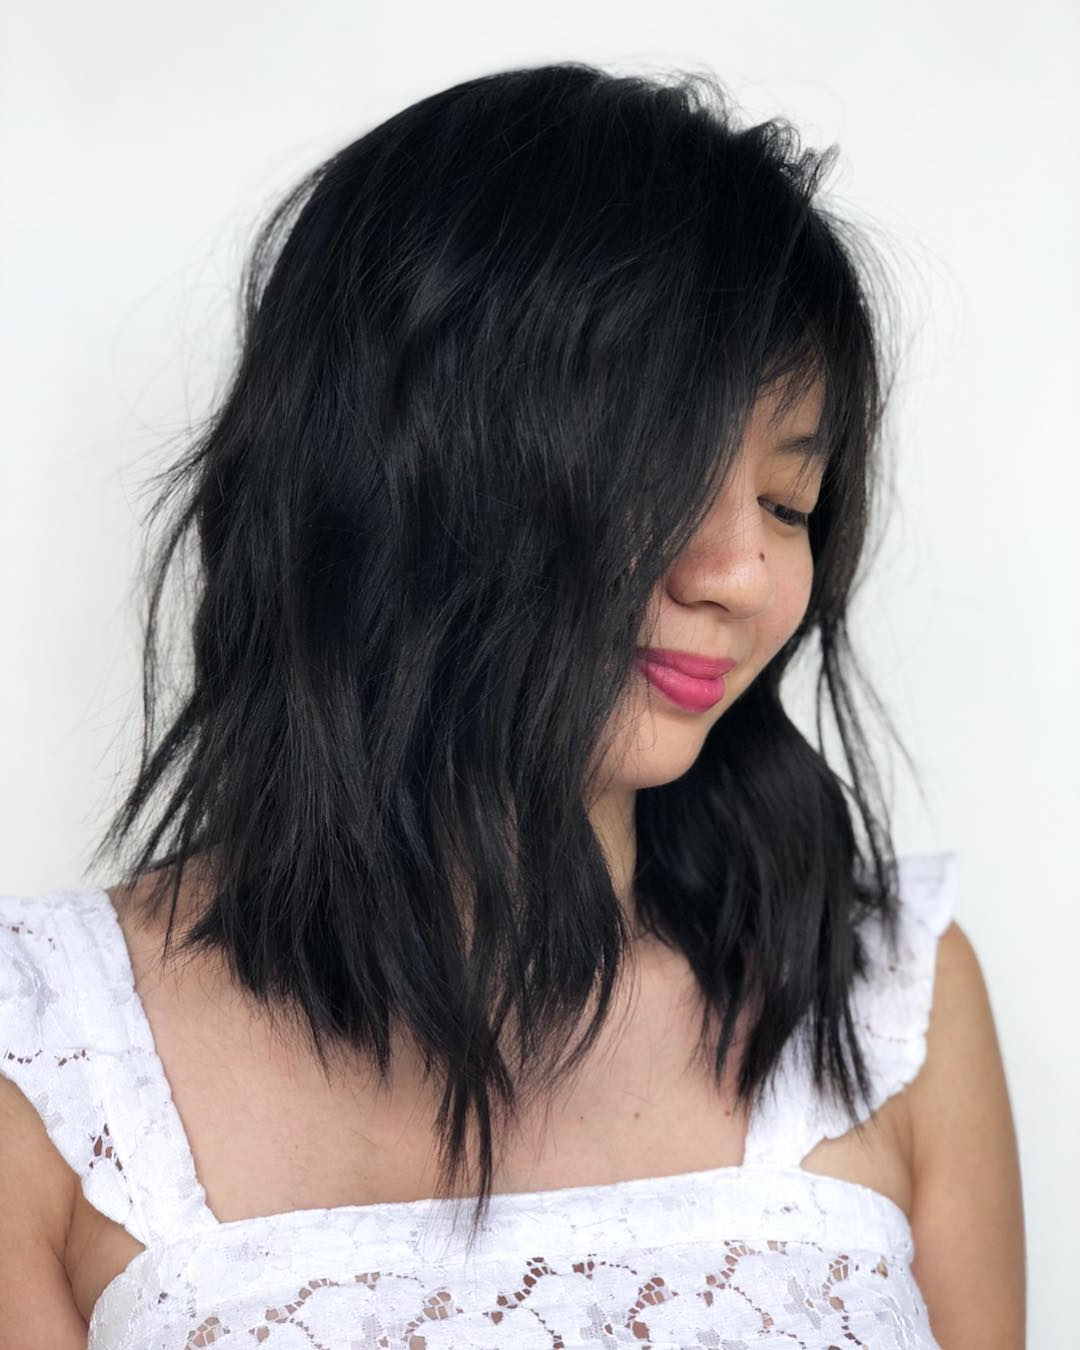 Well Known Razored Gray Bob Hairstyles With Bangs For 40 Medium Length Hairstyles For Thick Hair ⋆ Palau Oceans (Gallery 8 of 20)